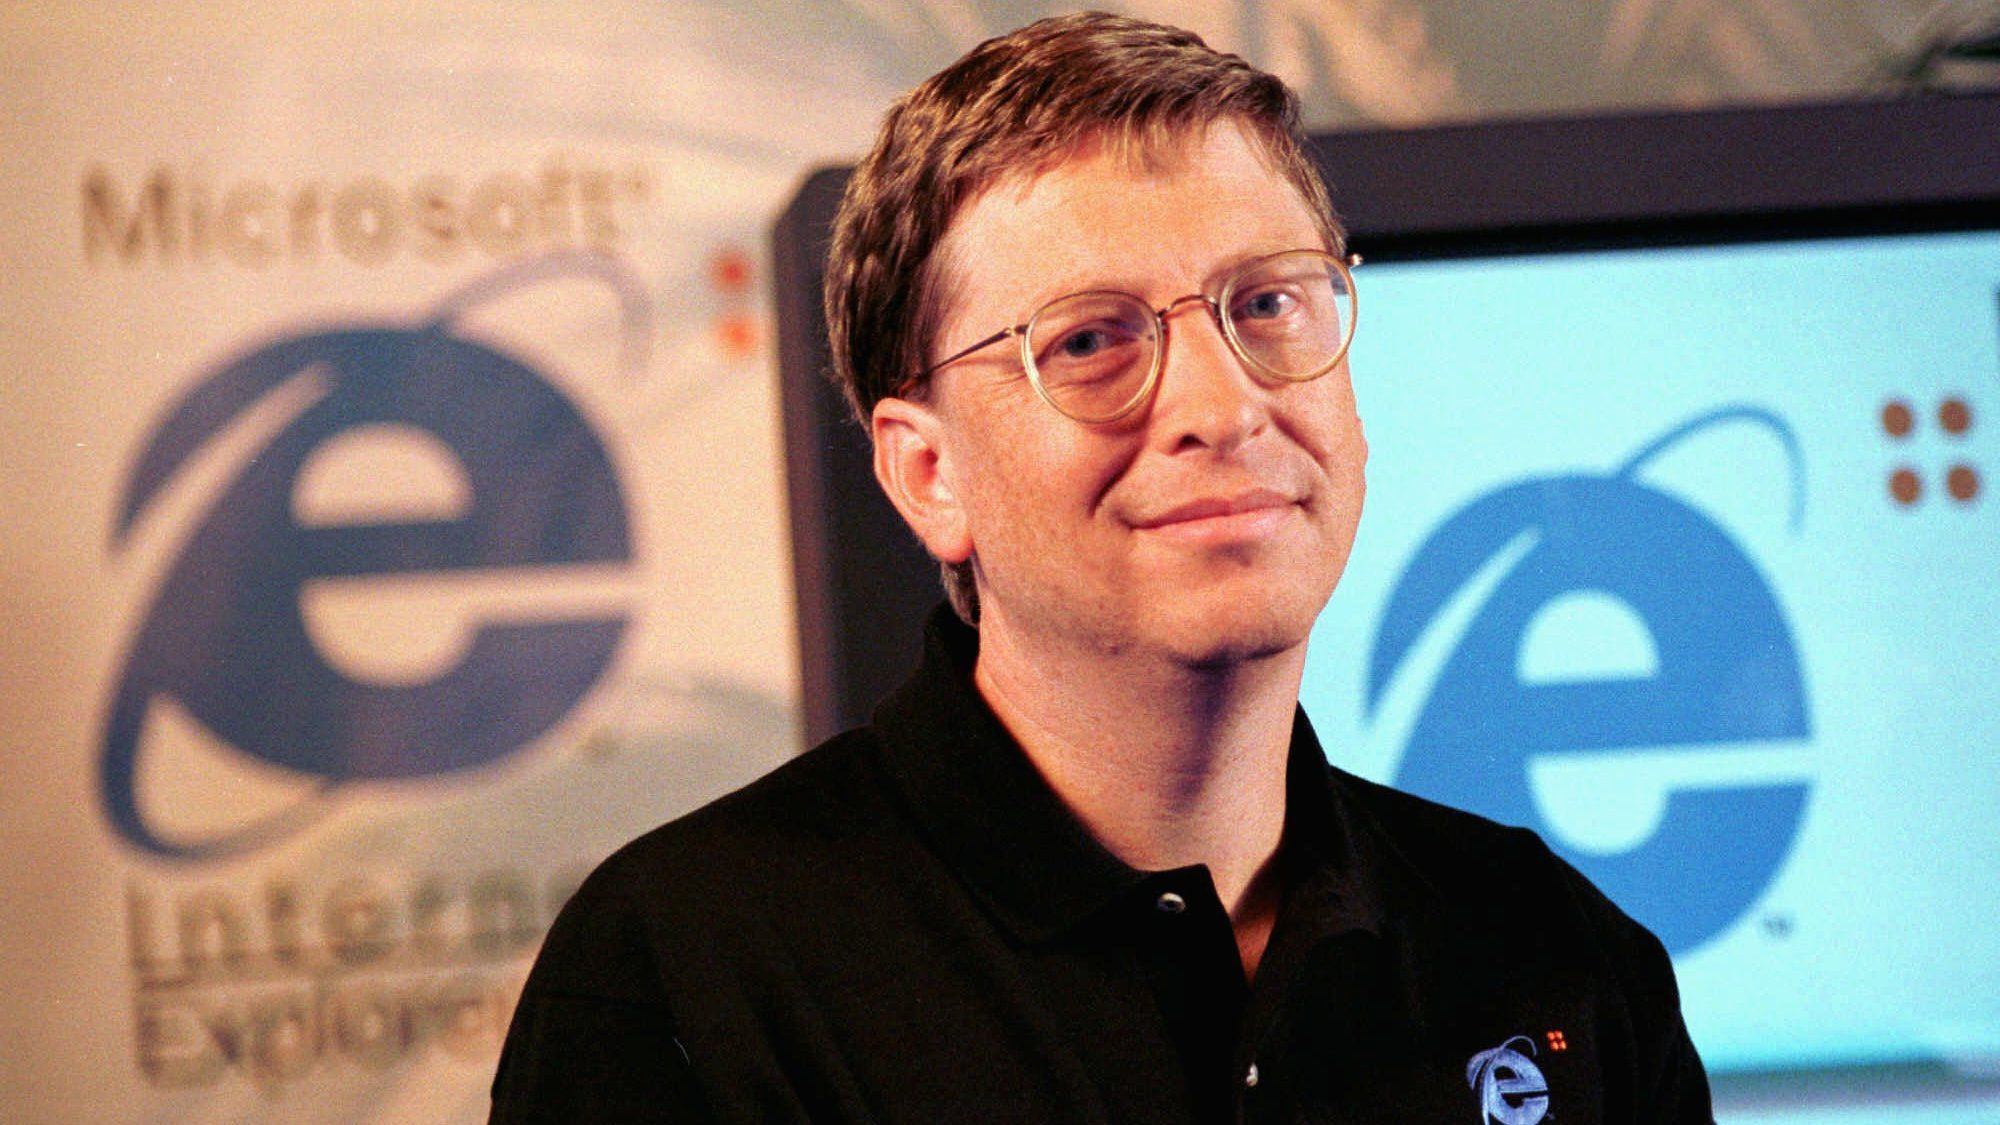 Bill Gates, chairman of Microsoft, introduces his company's latest Web browser, Internet Explorer 4.0, in San Francisco in this Sept. 30, 1997 file photo.  Microsoft Corp. avoided a contempt of court citation on Thursday, Jan 22, 1998, by agreeing  to offer the most current version of its Windows 95 operating system without requiring computer makers to also install Internet Explorer software. (AP Photo/Dwayne Newton)